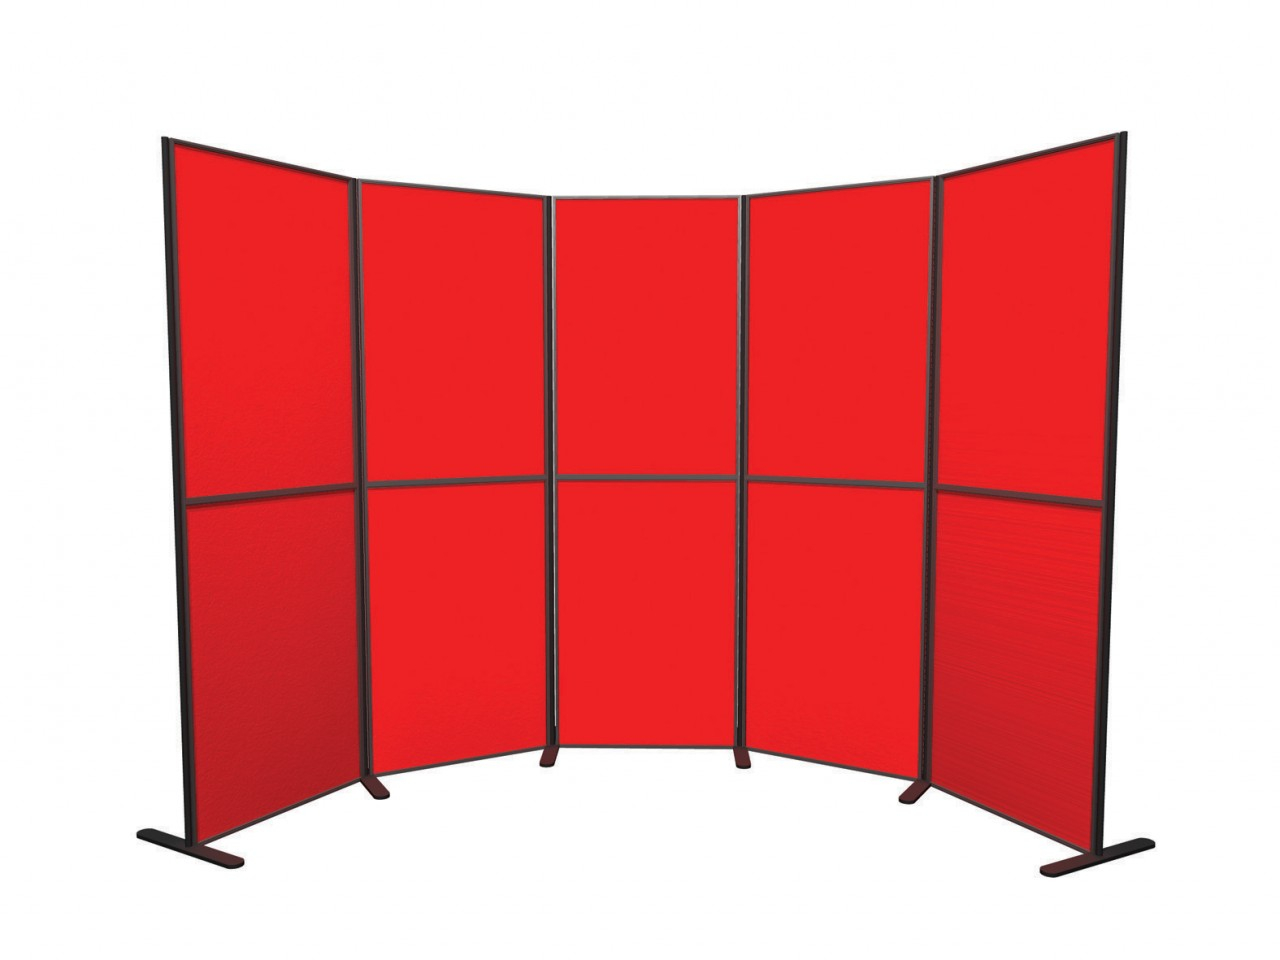 XL Standard 10 panel and pole modular display board system inc. carry bag